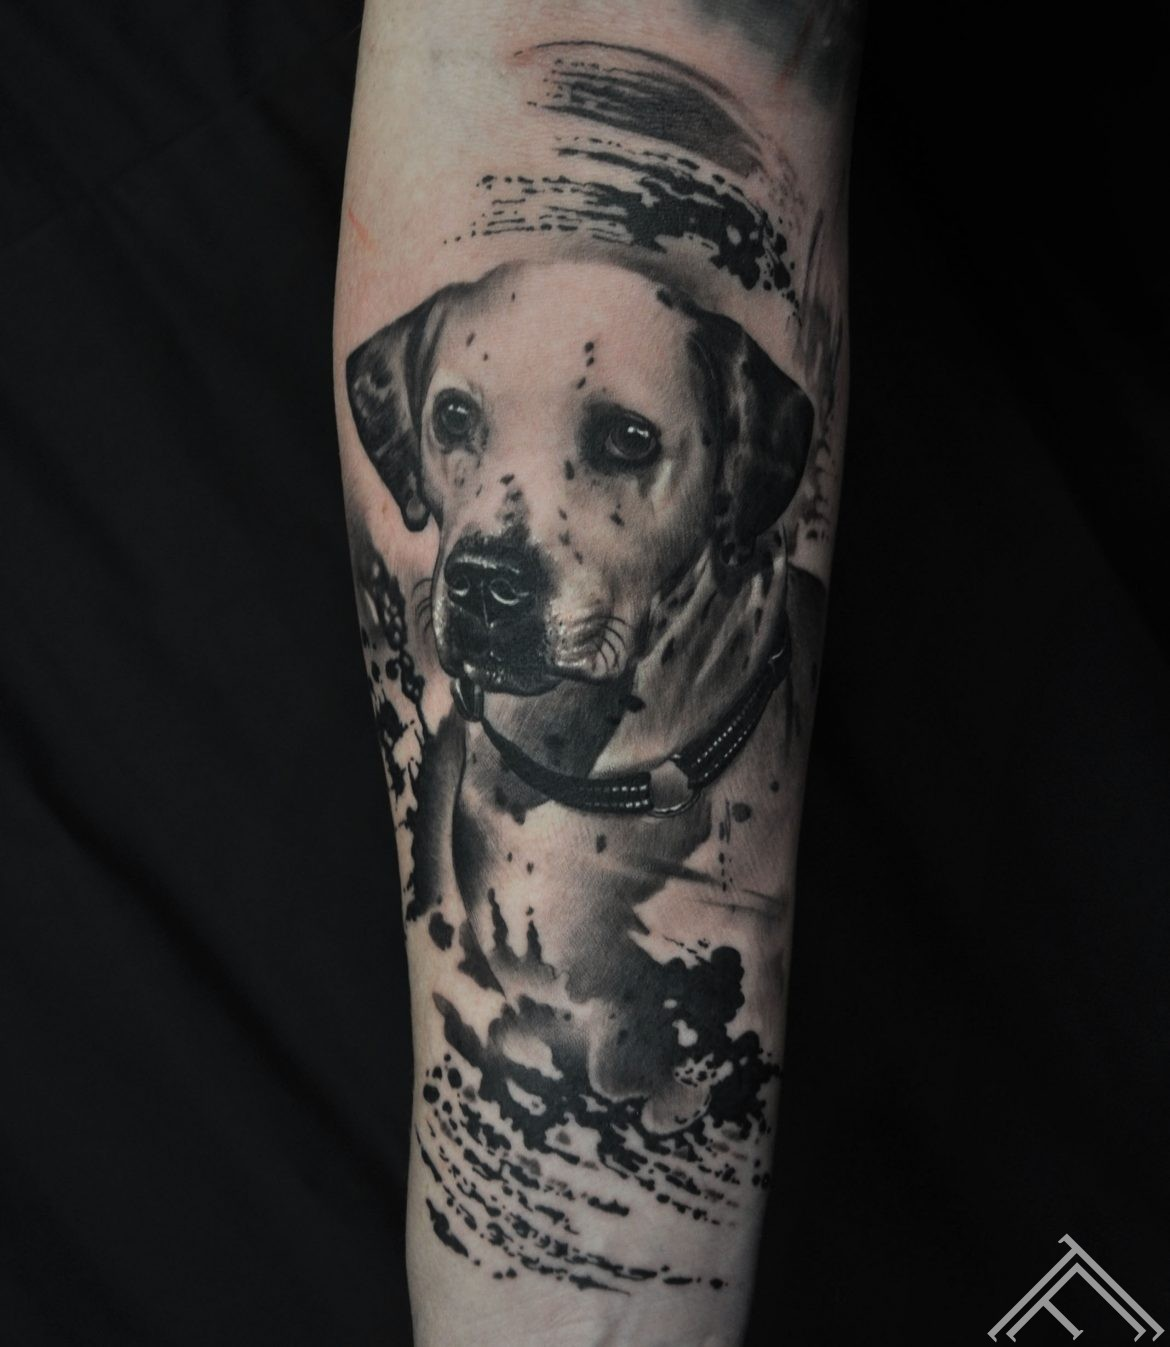 dog-tattoo-suns-tetovejums-marispavlo-art-maksla-tattoofrequency